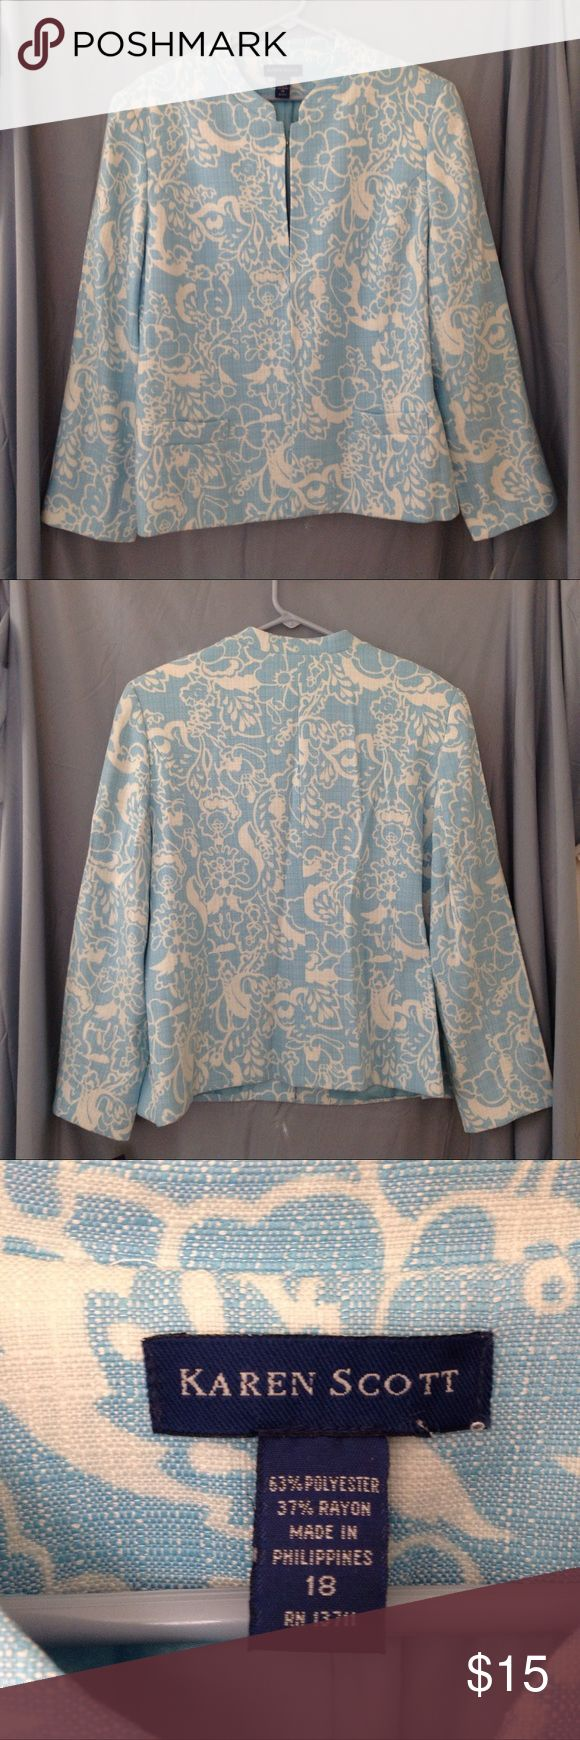 KAREN SCOTT lightweight pale blue jacket NWT Has 2 front pockets and hook and eye closure in the front.  New with tags.  Color may look different on your screen. Karen Scott Jackets & Coats